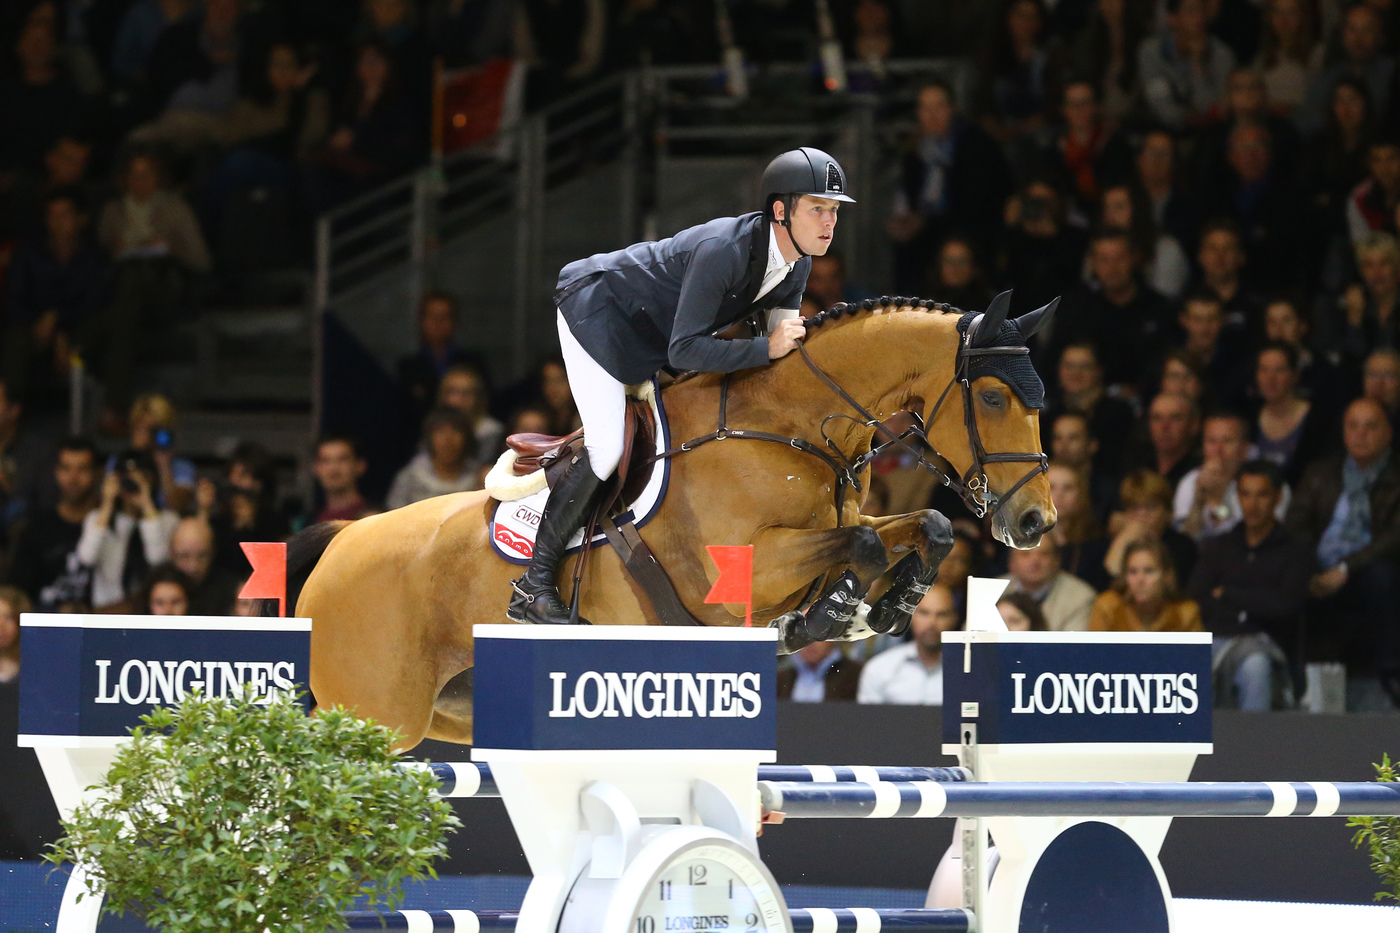 Longines Show Jumping Event: The Longines FEI World Cup™ Jumping Final: a perfect end to the series 5